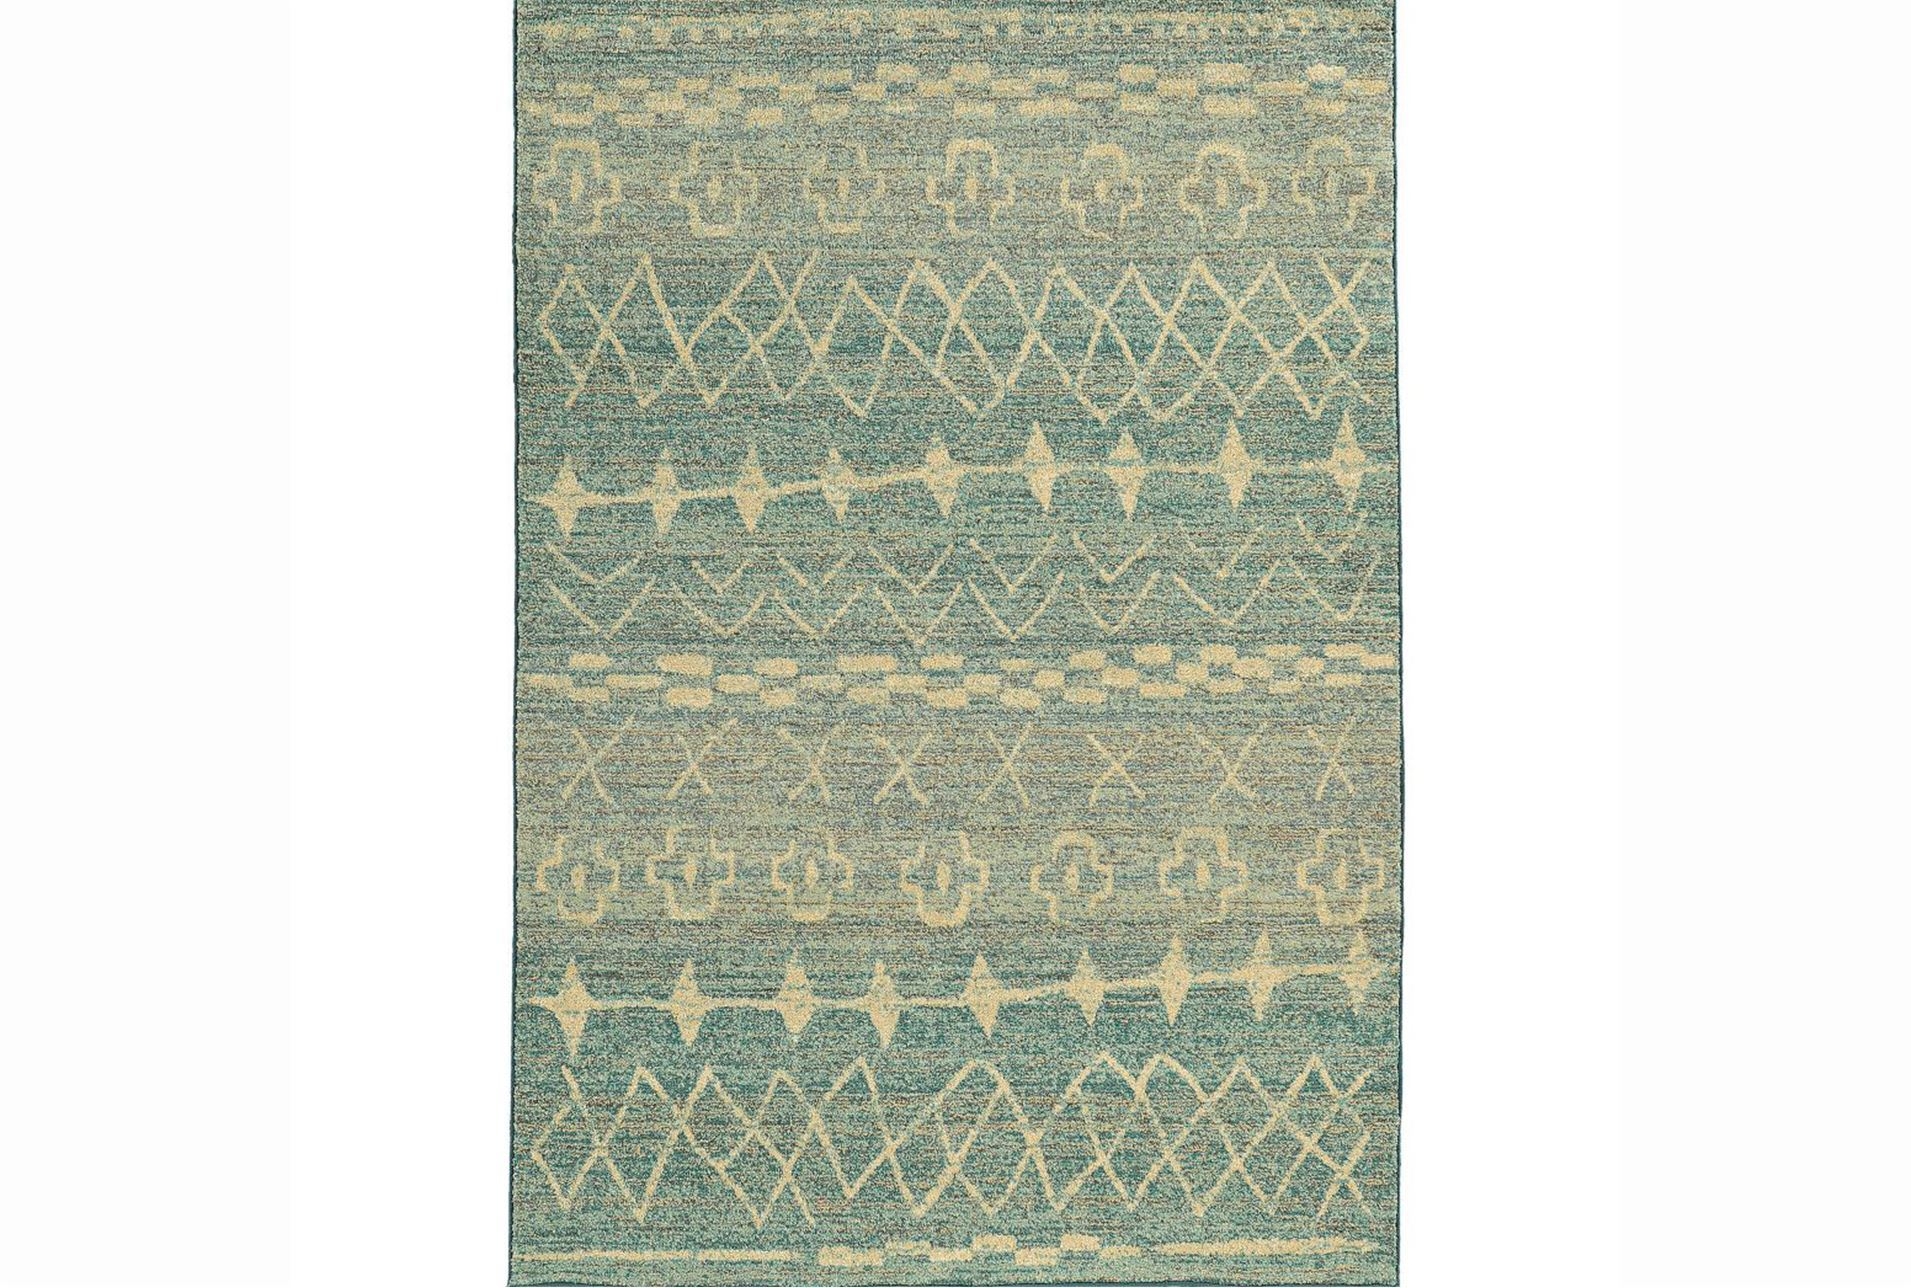 63x90 rug malta seaglass living spaces for Living spaces rugs